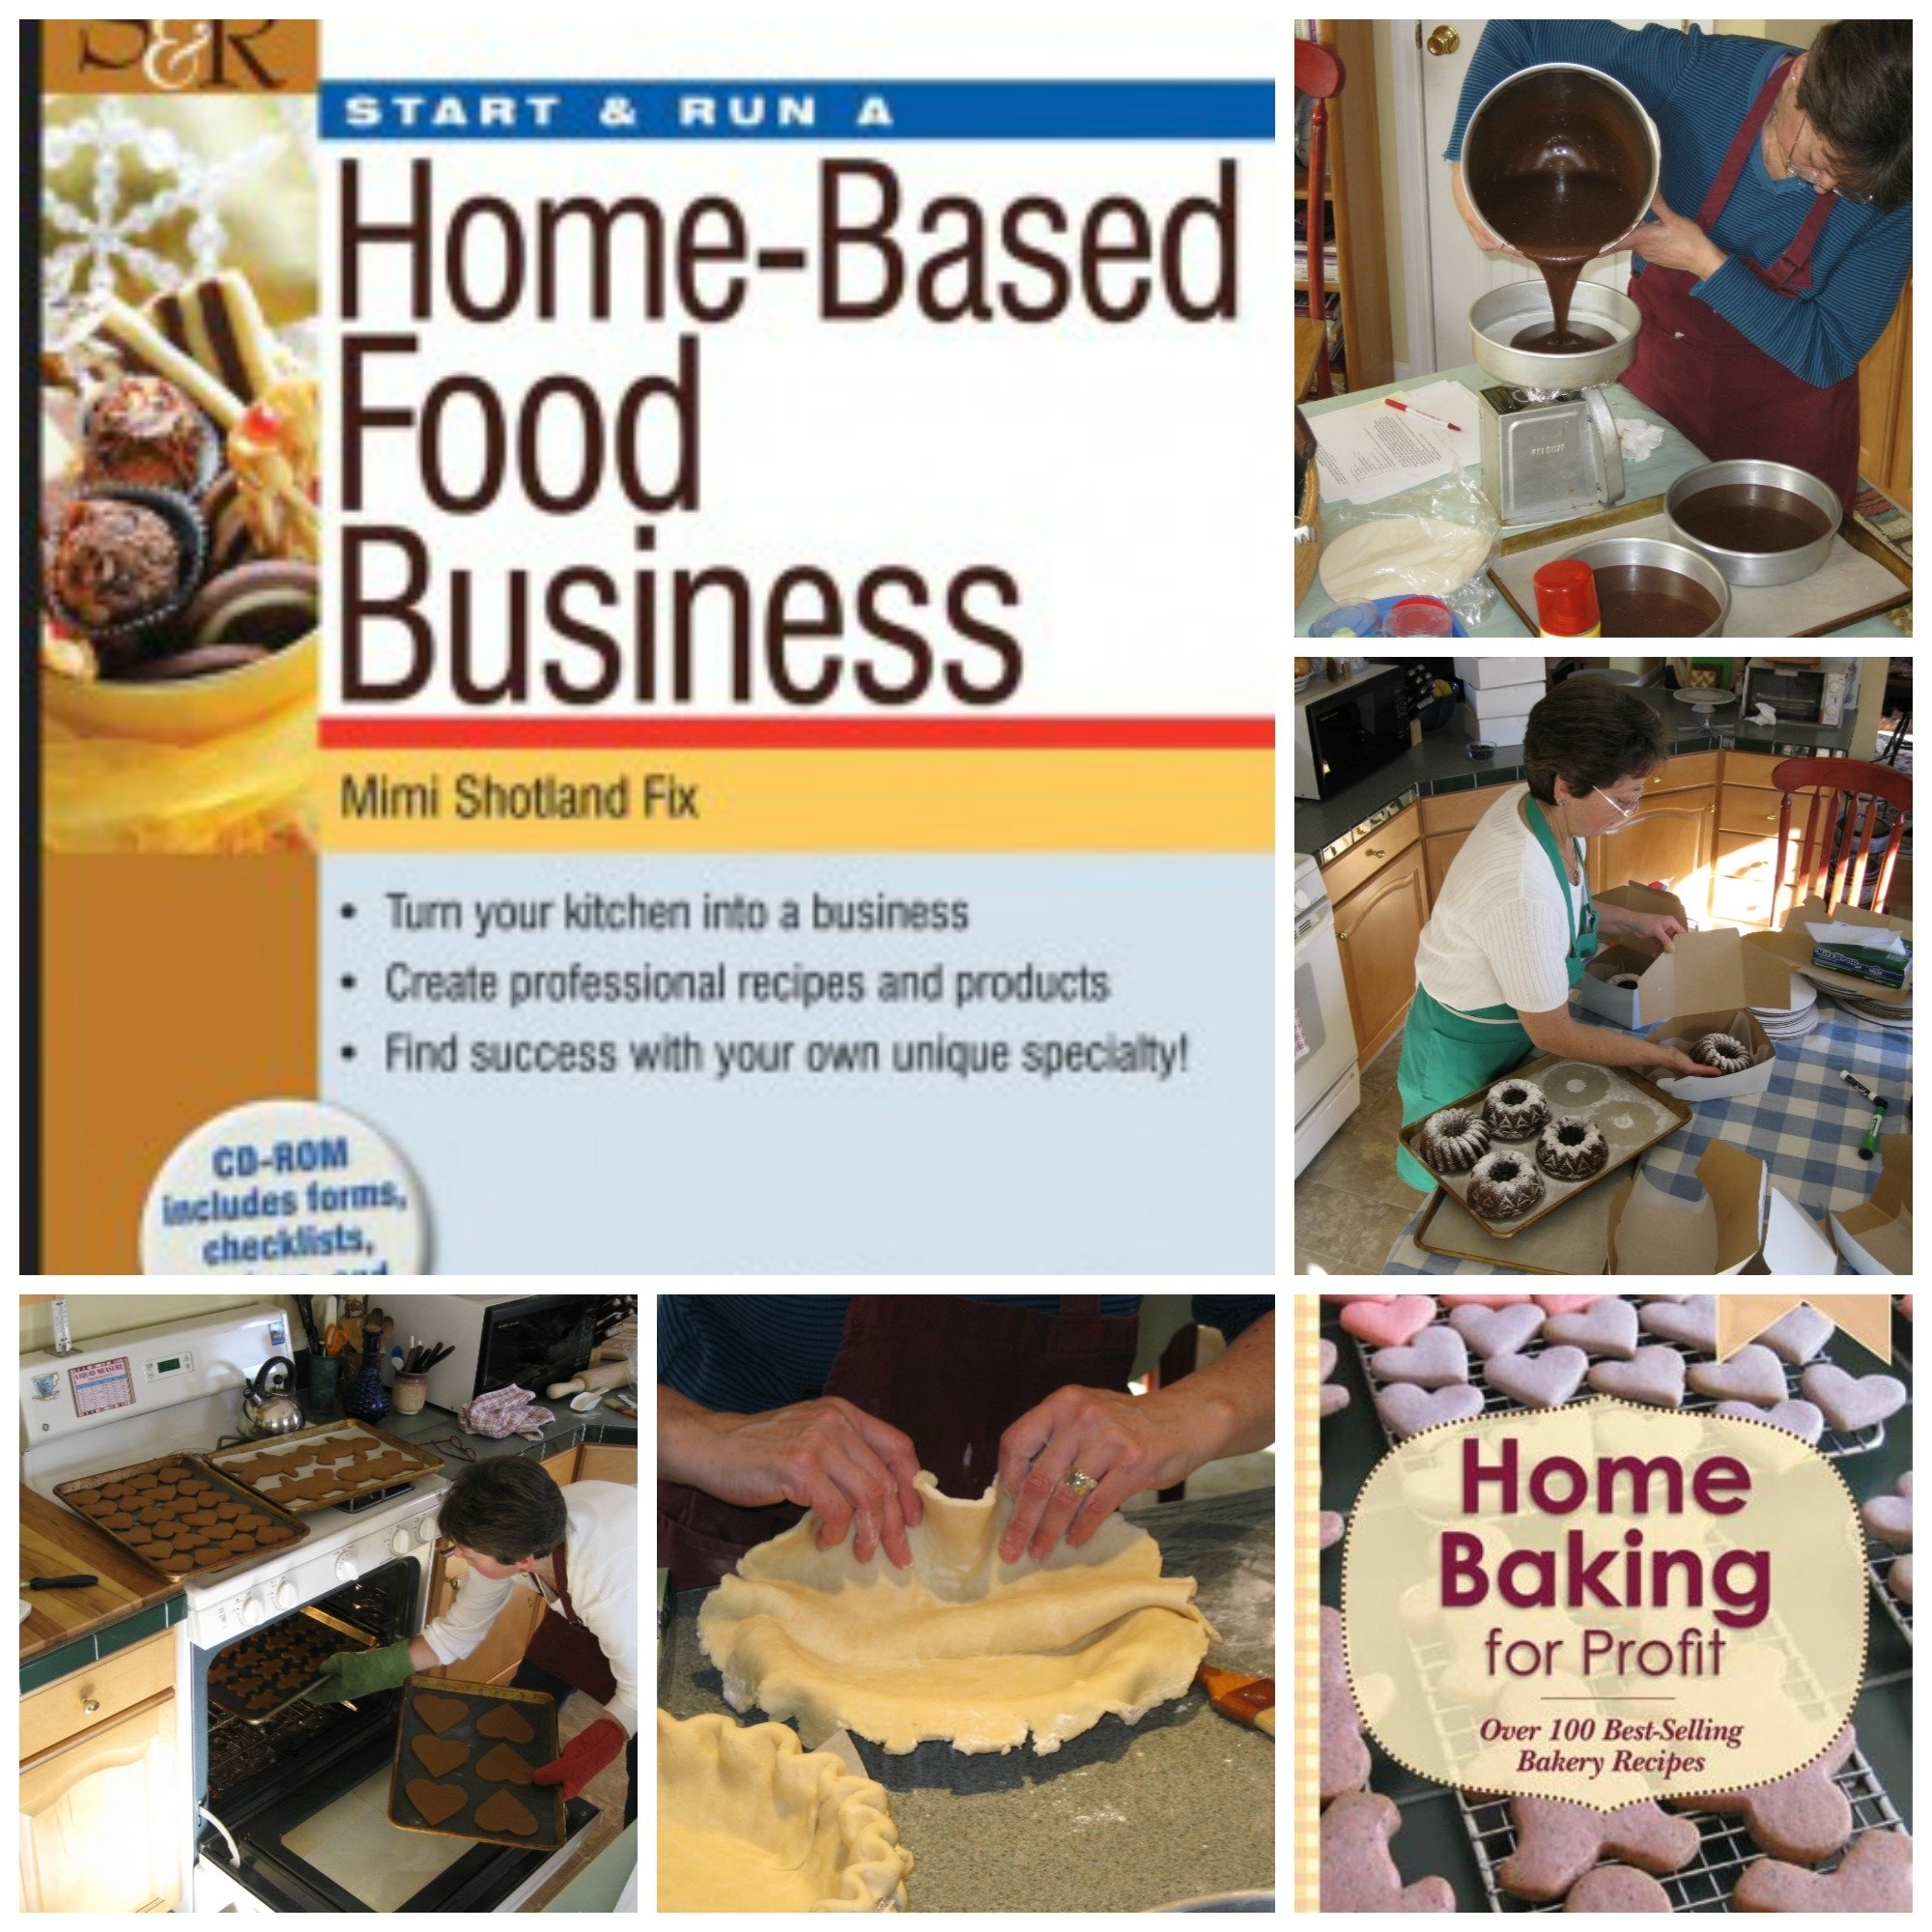 10 Most Recommended Good Home Based Business Ideas blog archive starting a home based food business 2 2020